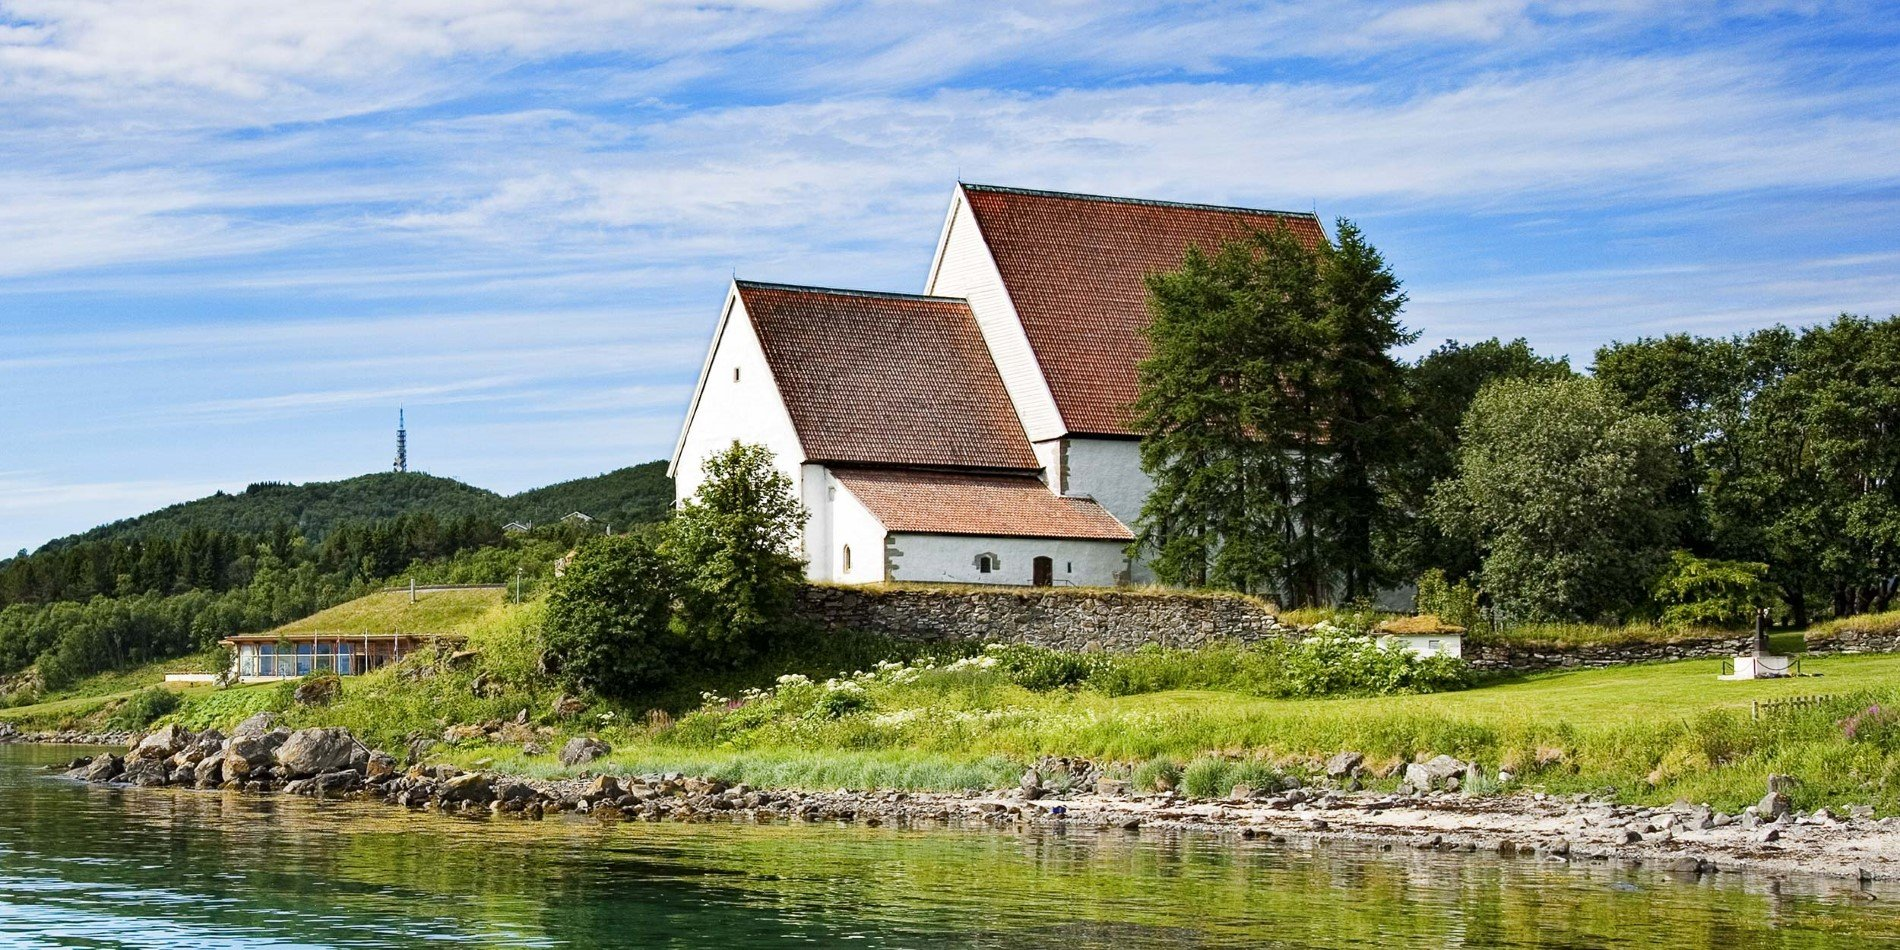 2500x1250_destinationharstad-no-Trondenes-Church-photo-Sør-troms-museum[2]_Topaz.jpg